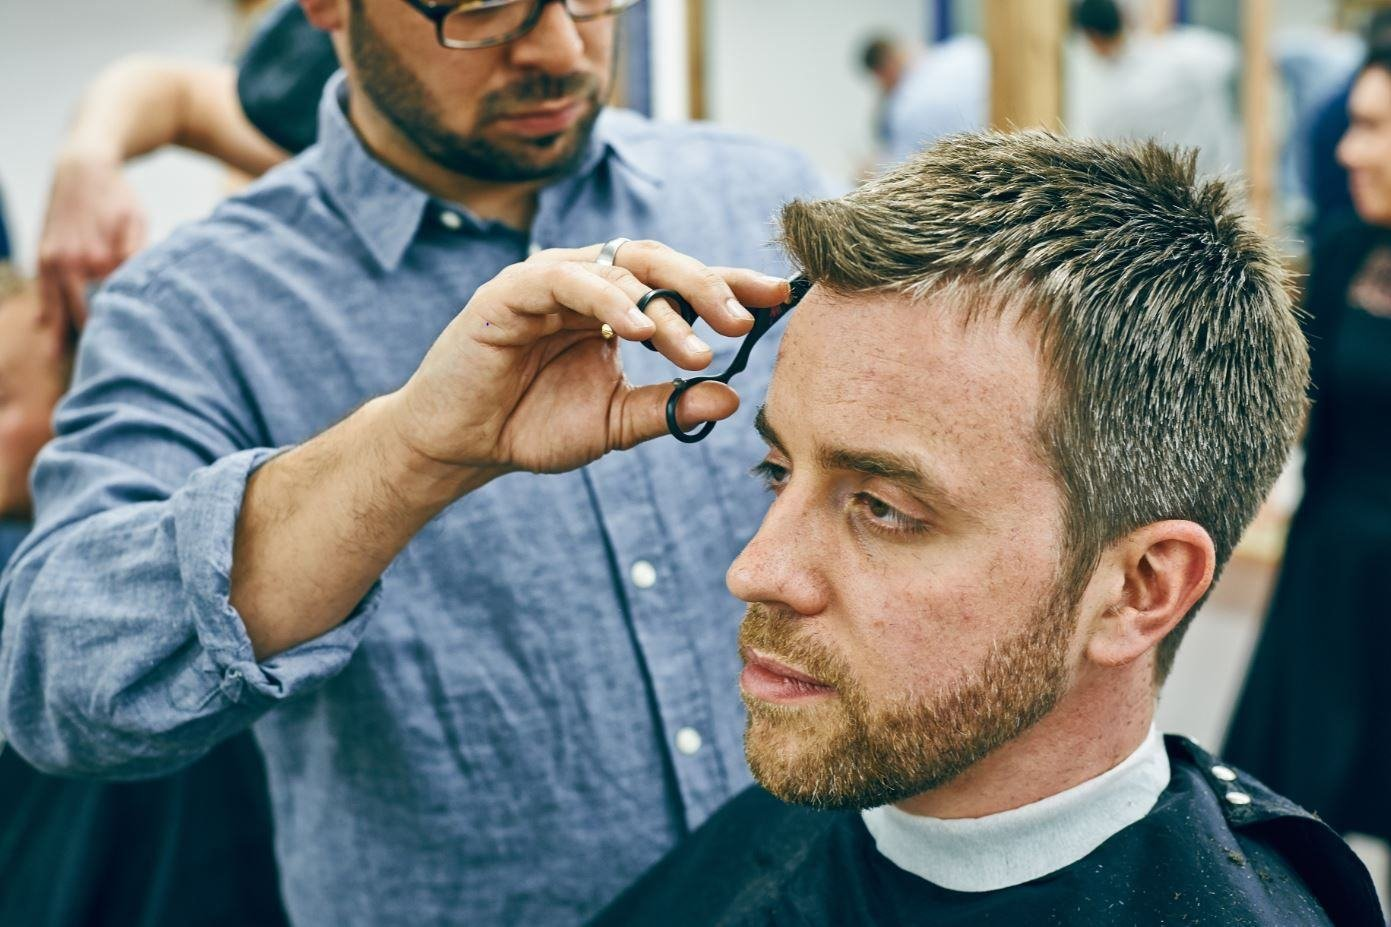 The Best London School Of Barbering Free Haircuts Brokeinlondon Pictures